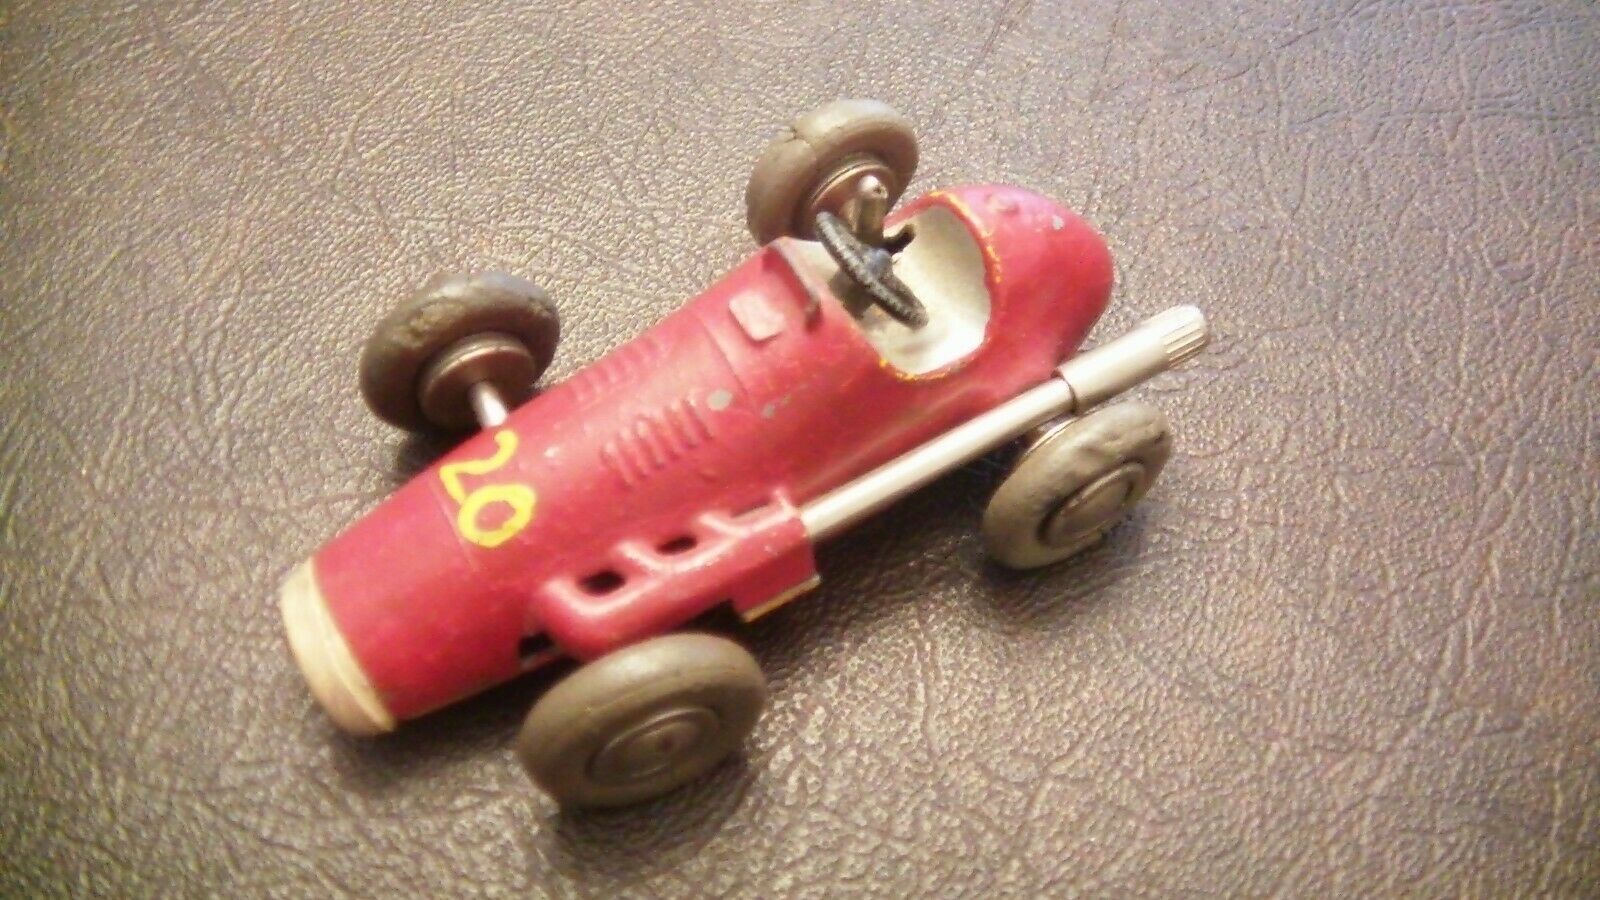 Schuco Micro Racer - Nice Red old toy